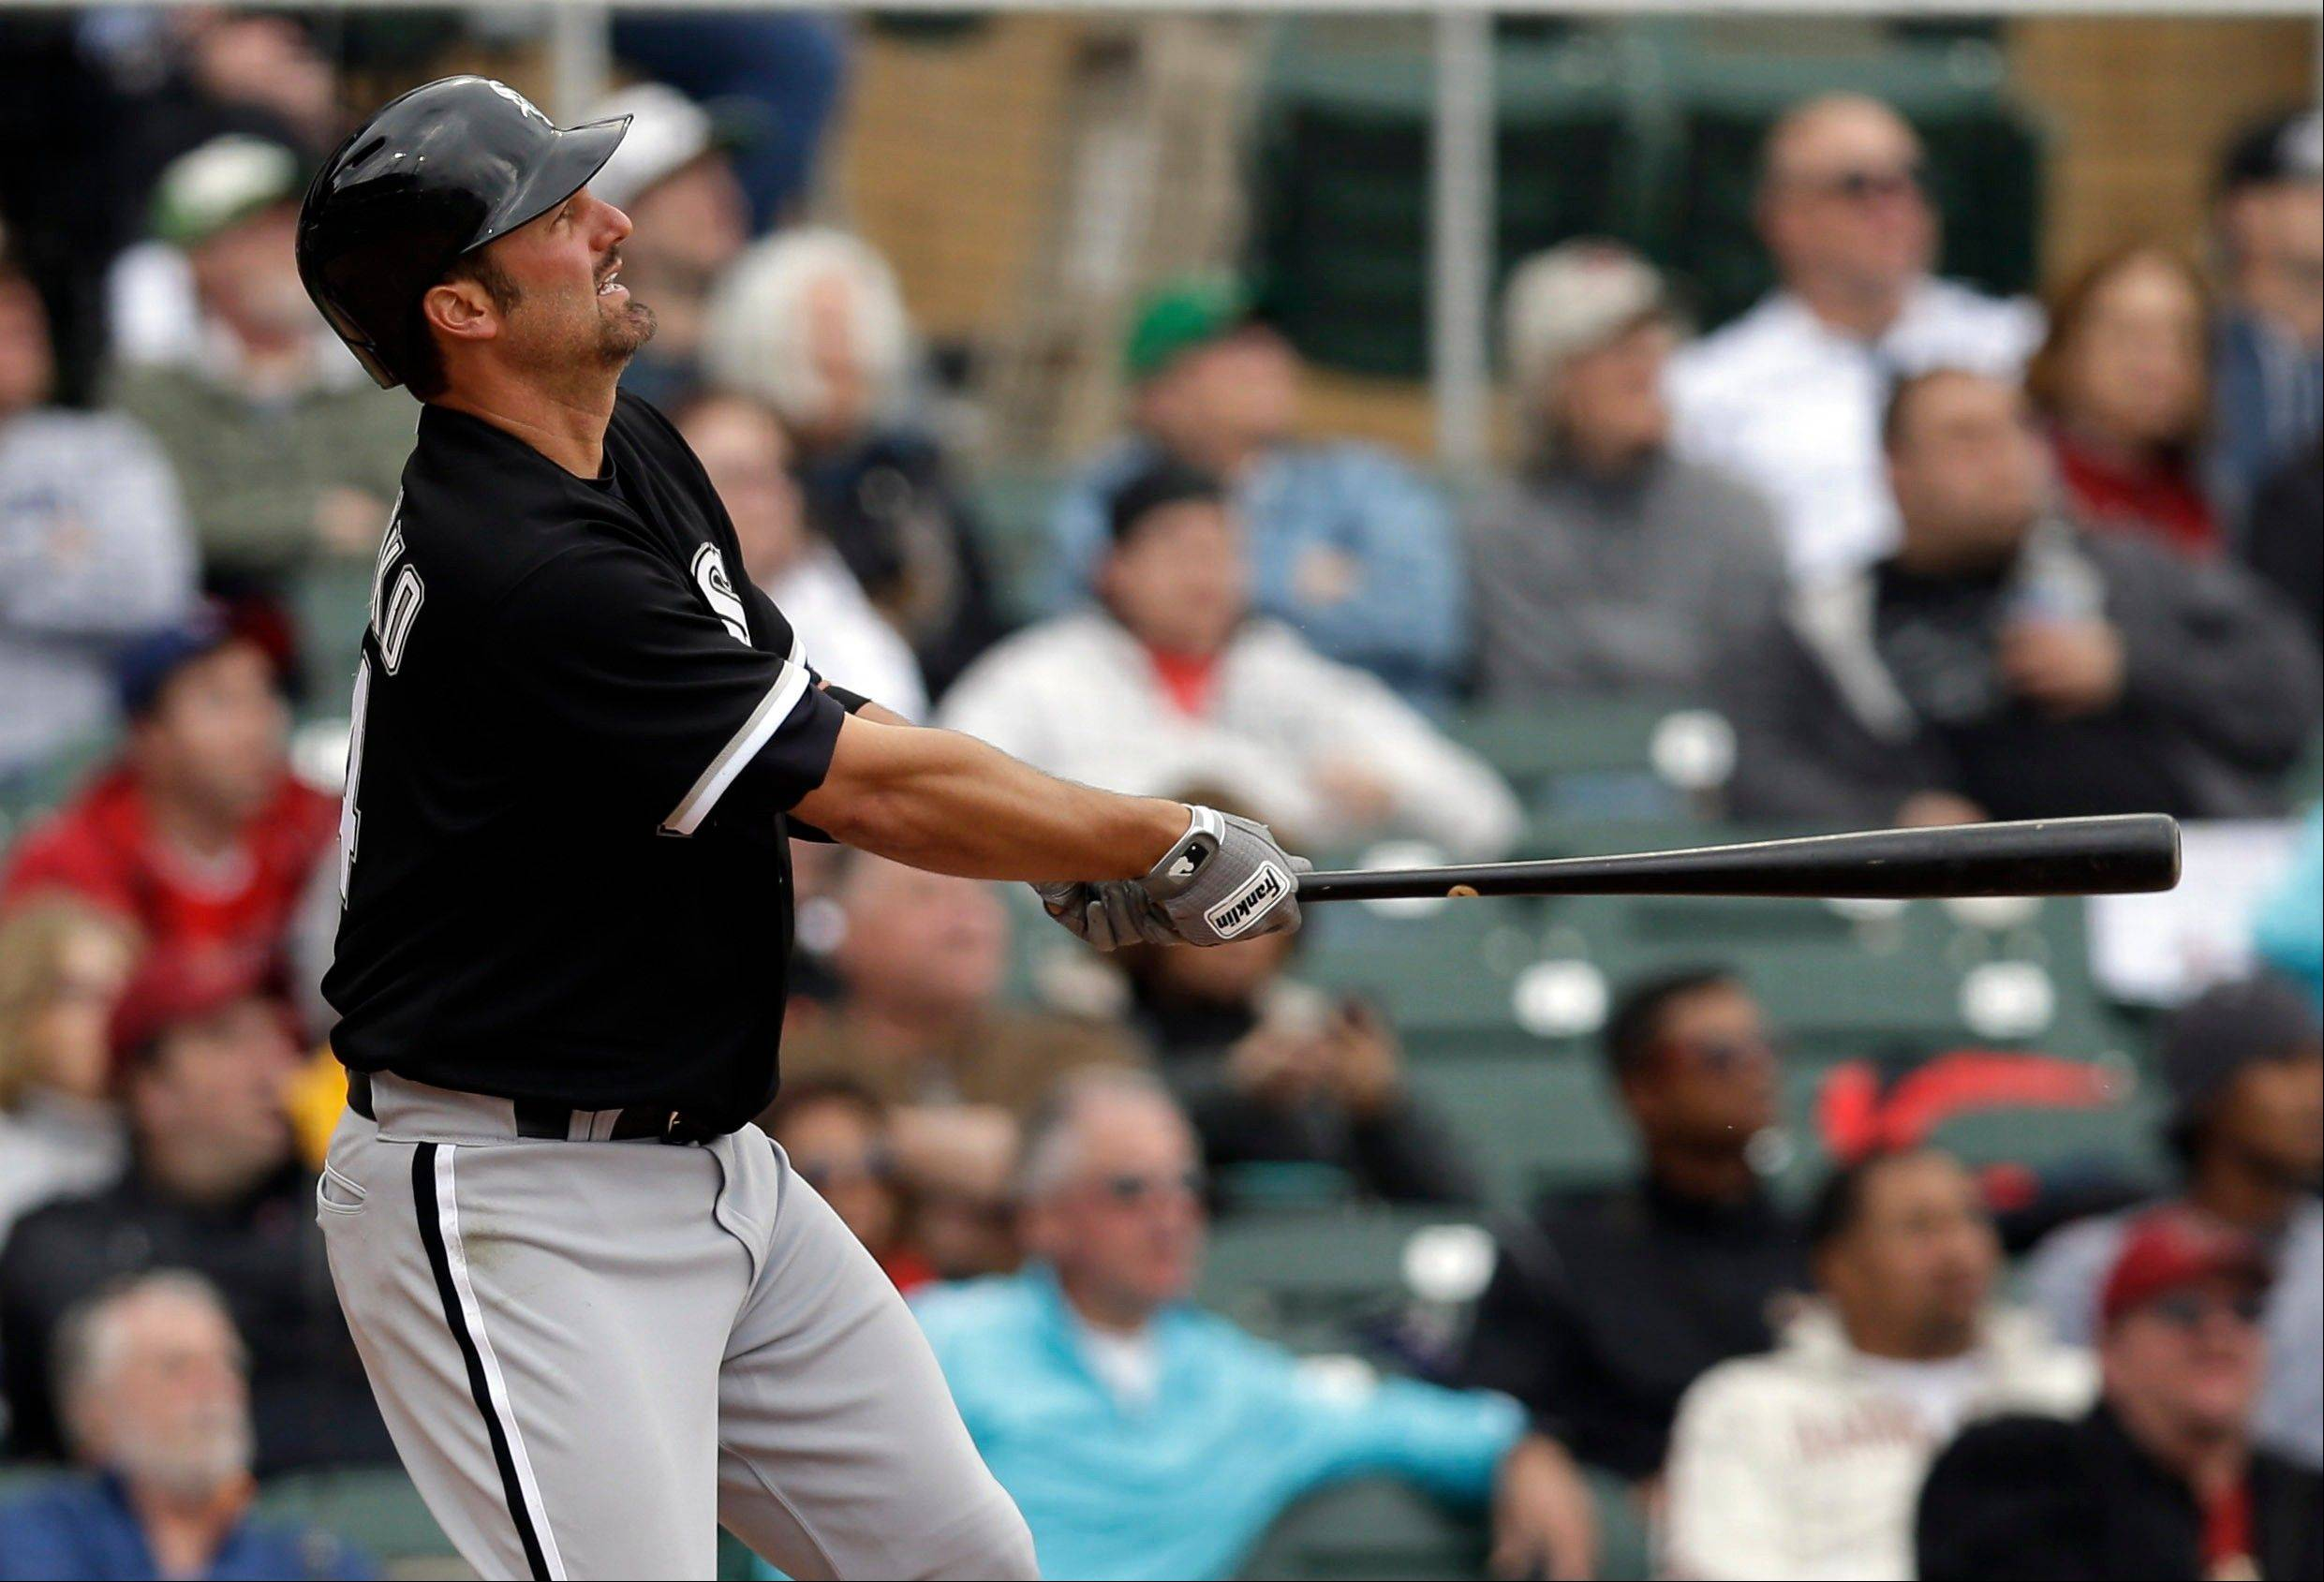 Chicago White Sox's Paul Konerko watches his three-run home run against the Arizona Diamondbacks during the fifth inning of an exhibition spring training baseball game on Saturday, March 9, 2013 in Scottsdale, Ariz. (AP Photo/Marcio Jose Sanchez)